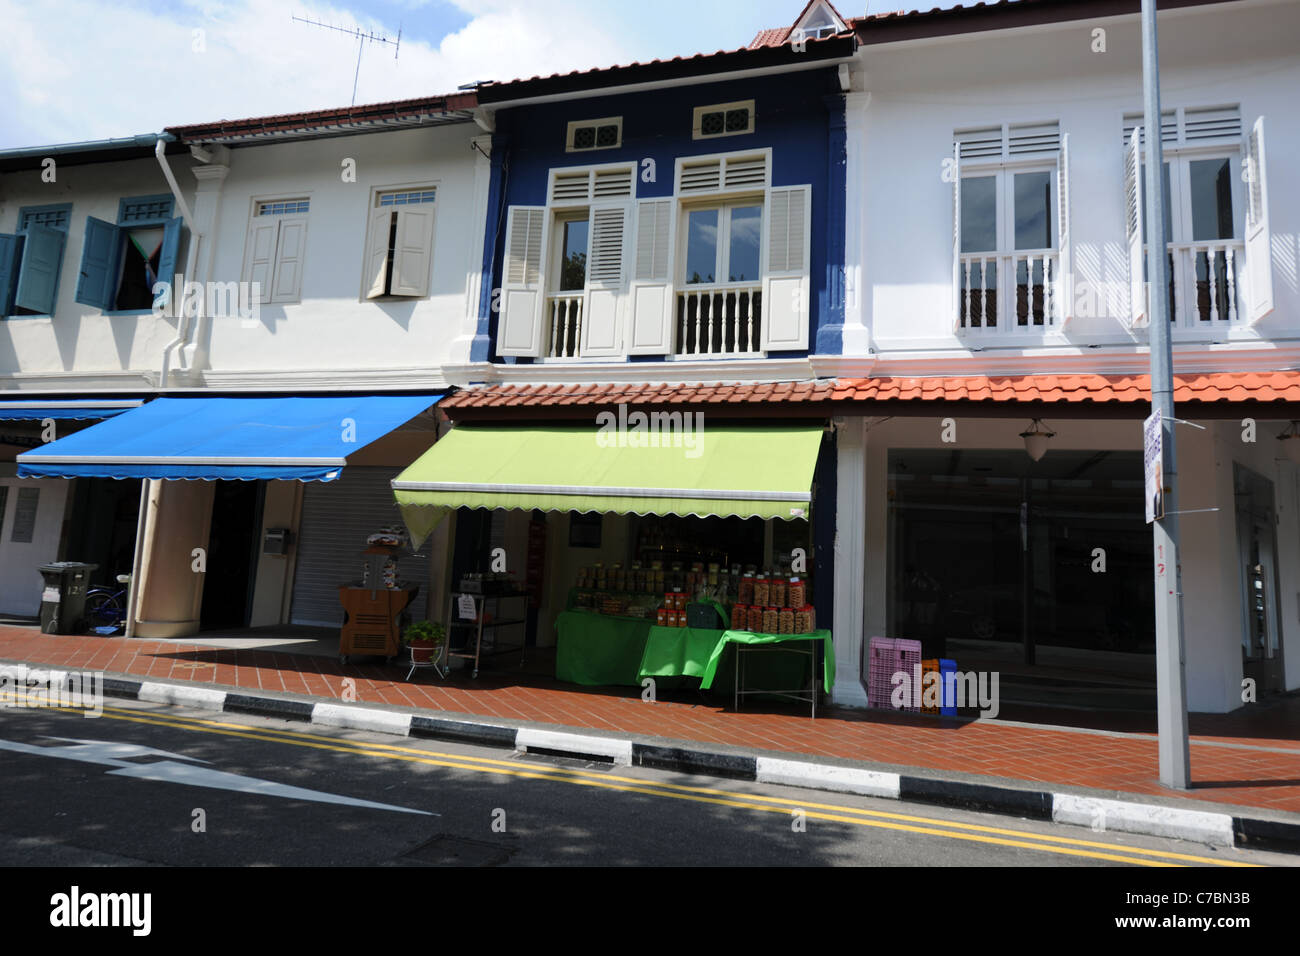 traditional shophouses in theconservation area Joo Chiat, Singapore - Stock Image